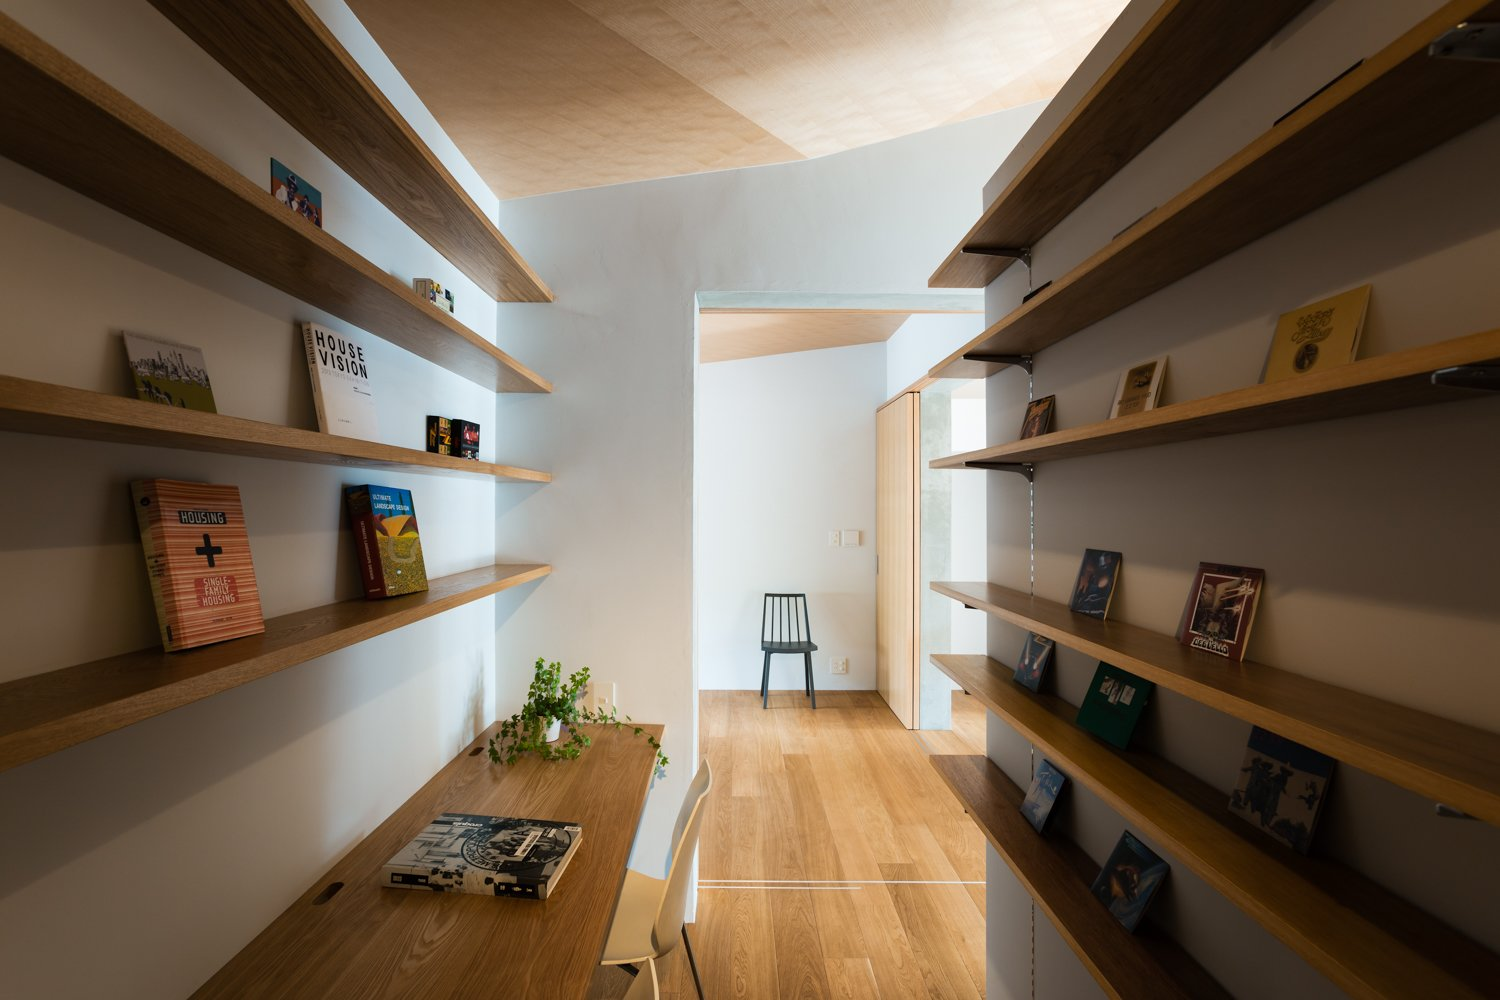 Office, Shelves, Chair, Study Room Type, and Medium Hardwood Floor  ROROOF vol.2